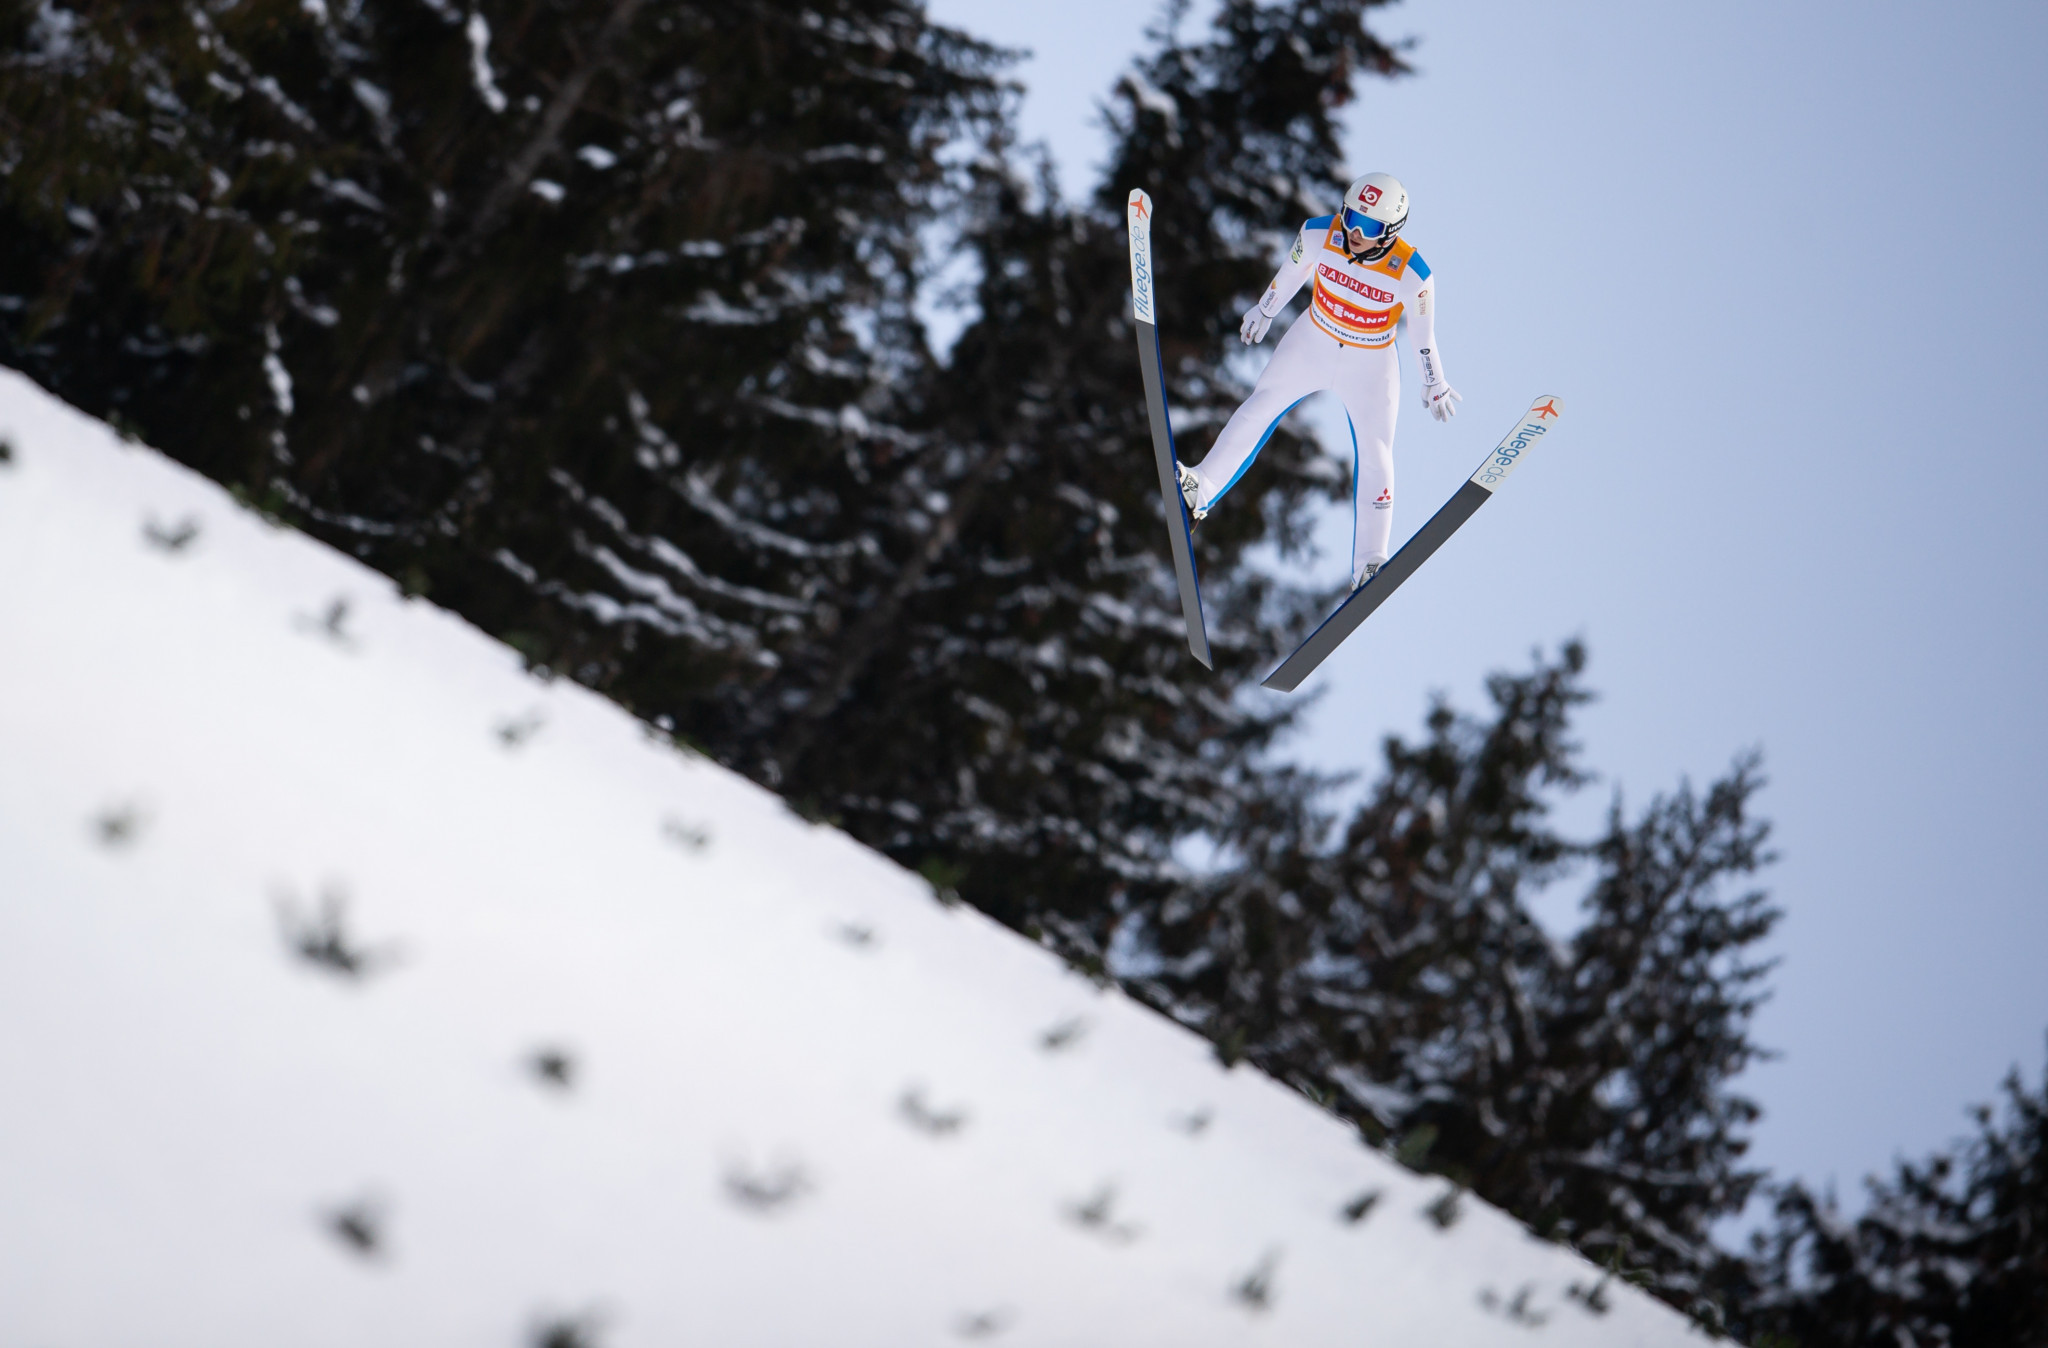 Halvor Egner Granerud is the individual World Cup leader ©Getty Images